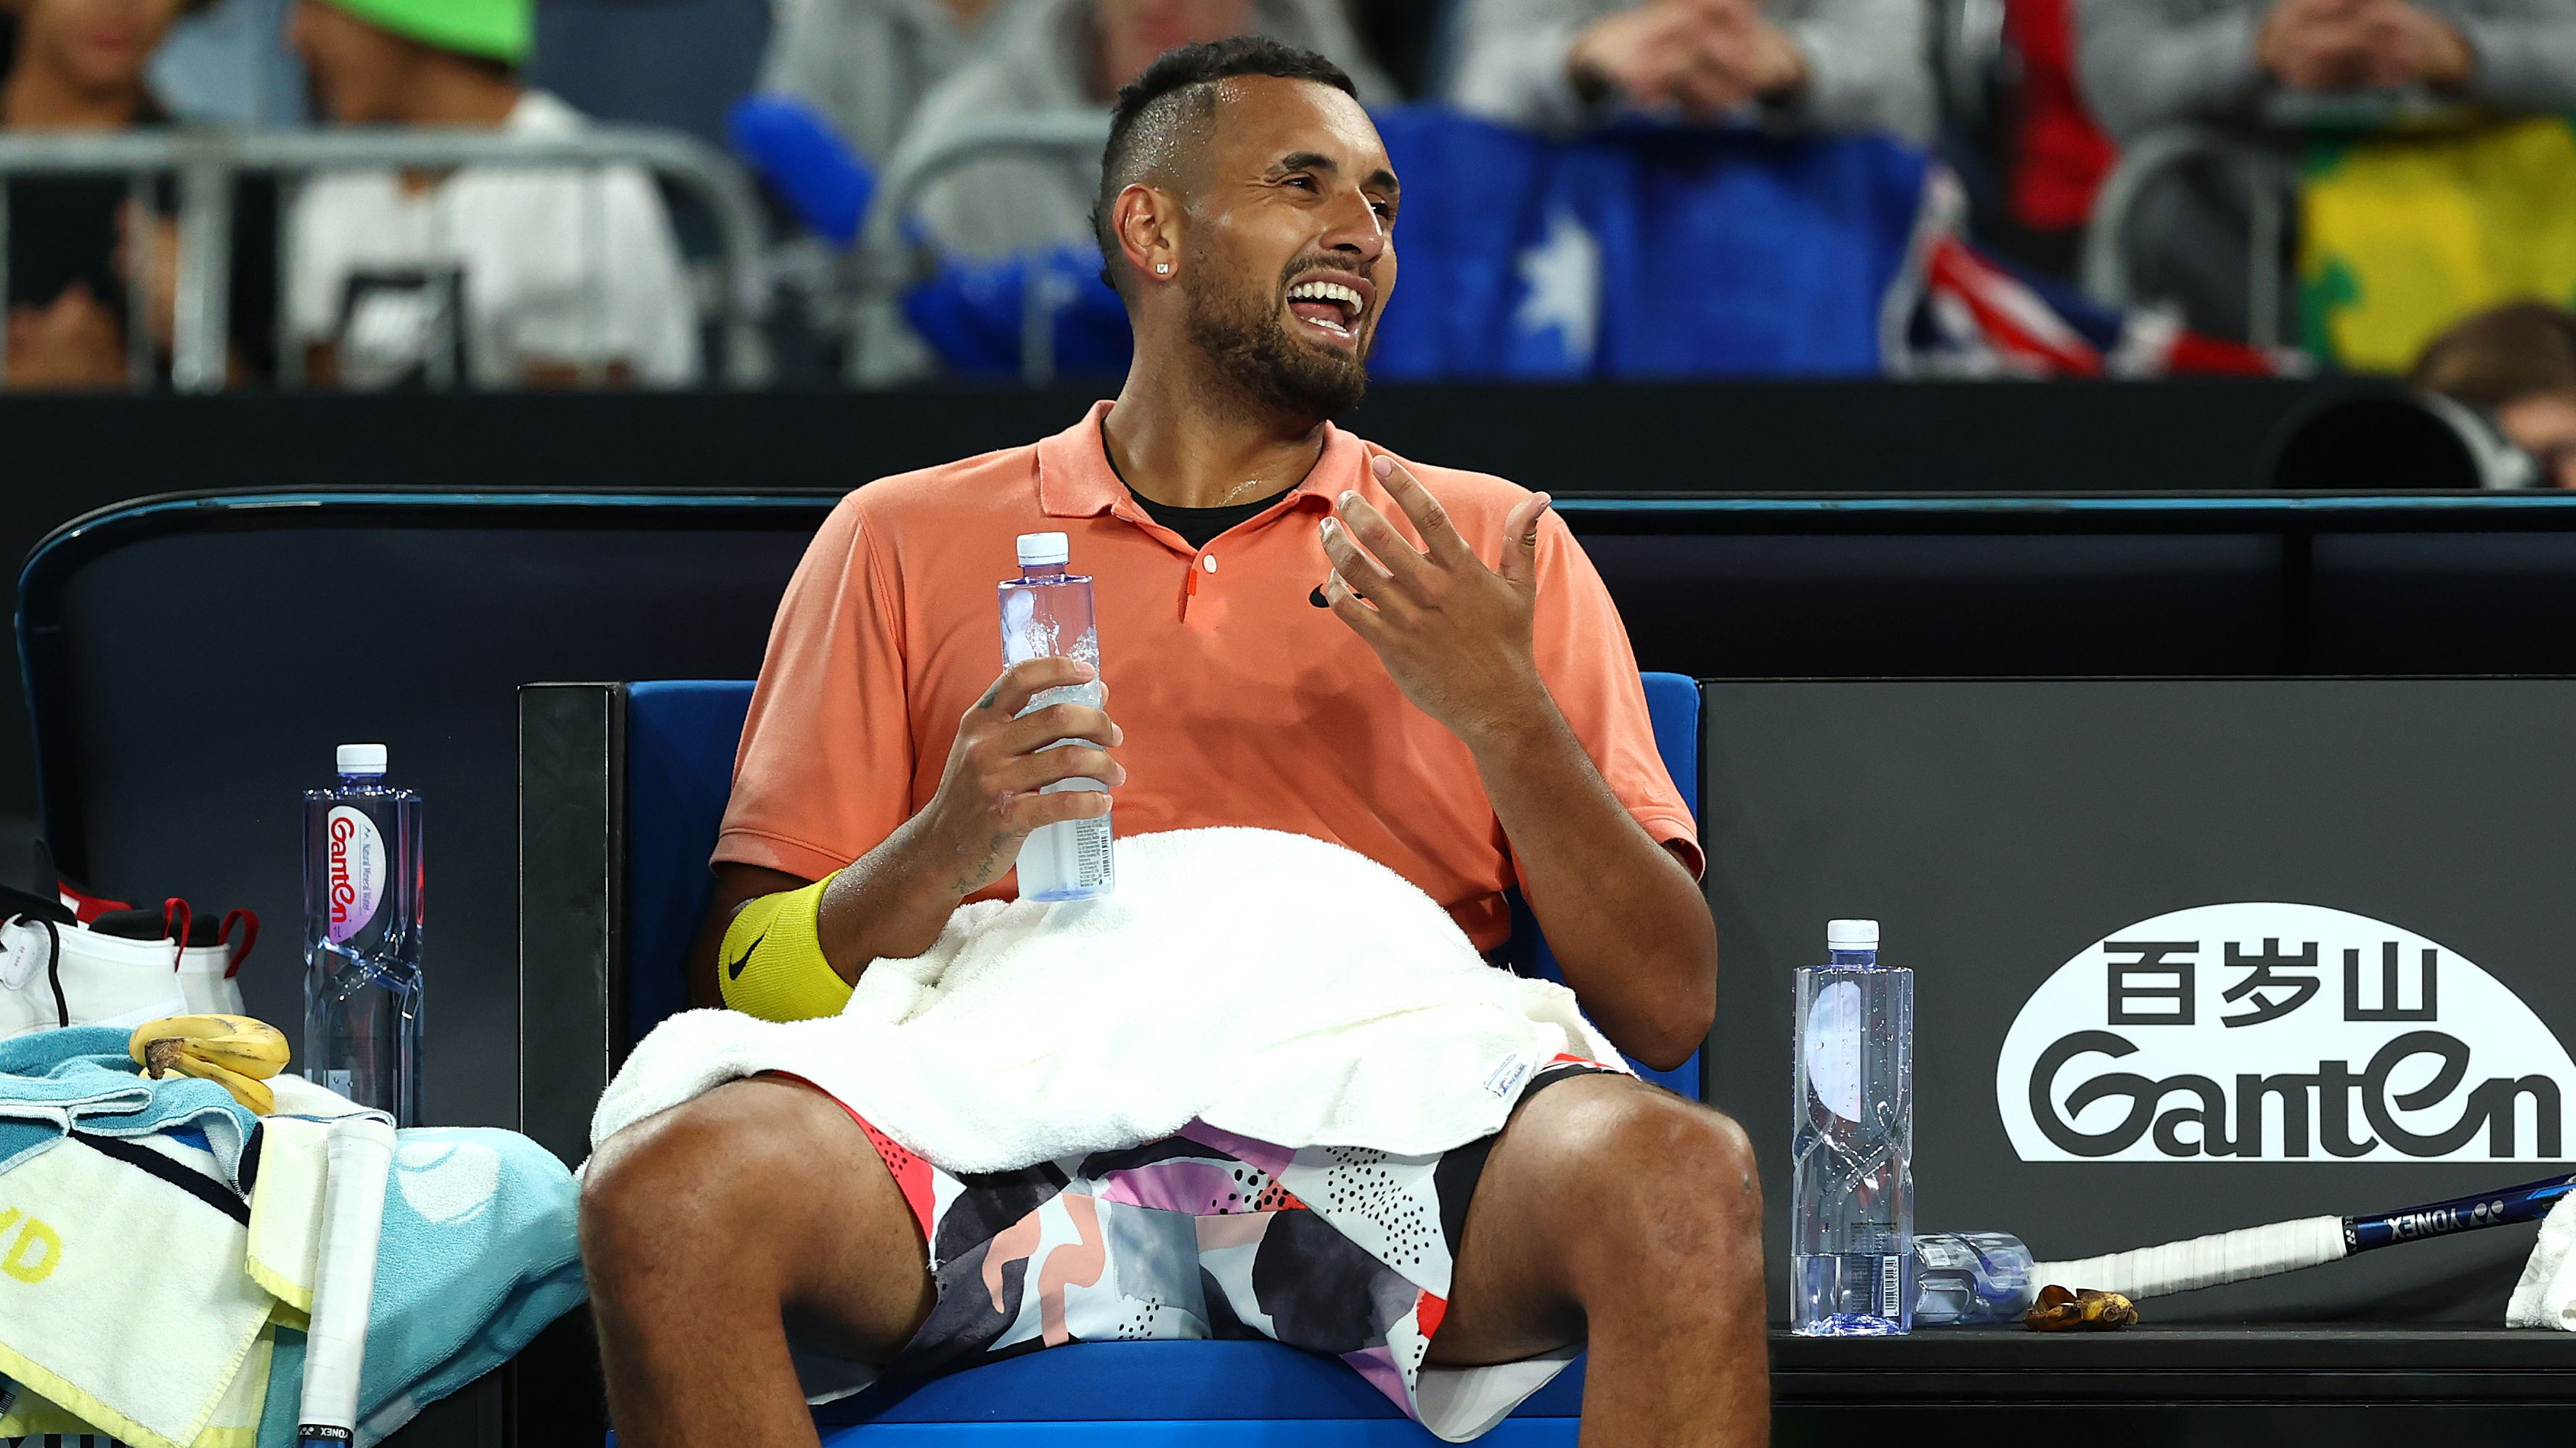 Nick Kyrgios progresses to third round after lesson in self-destruction